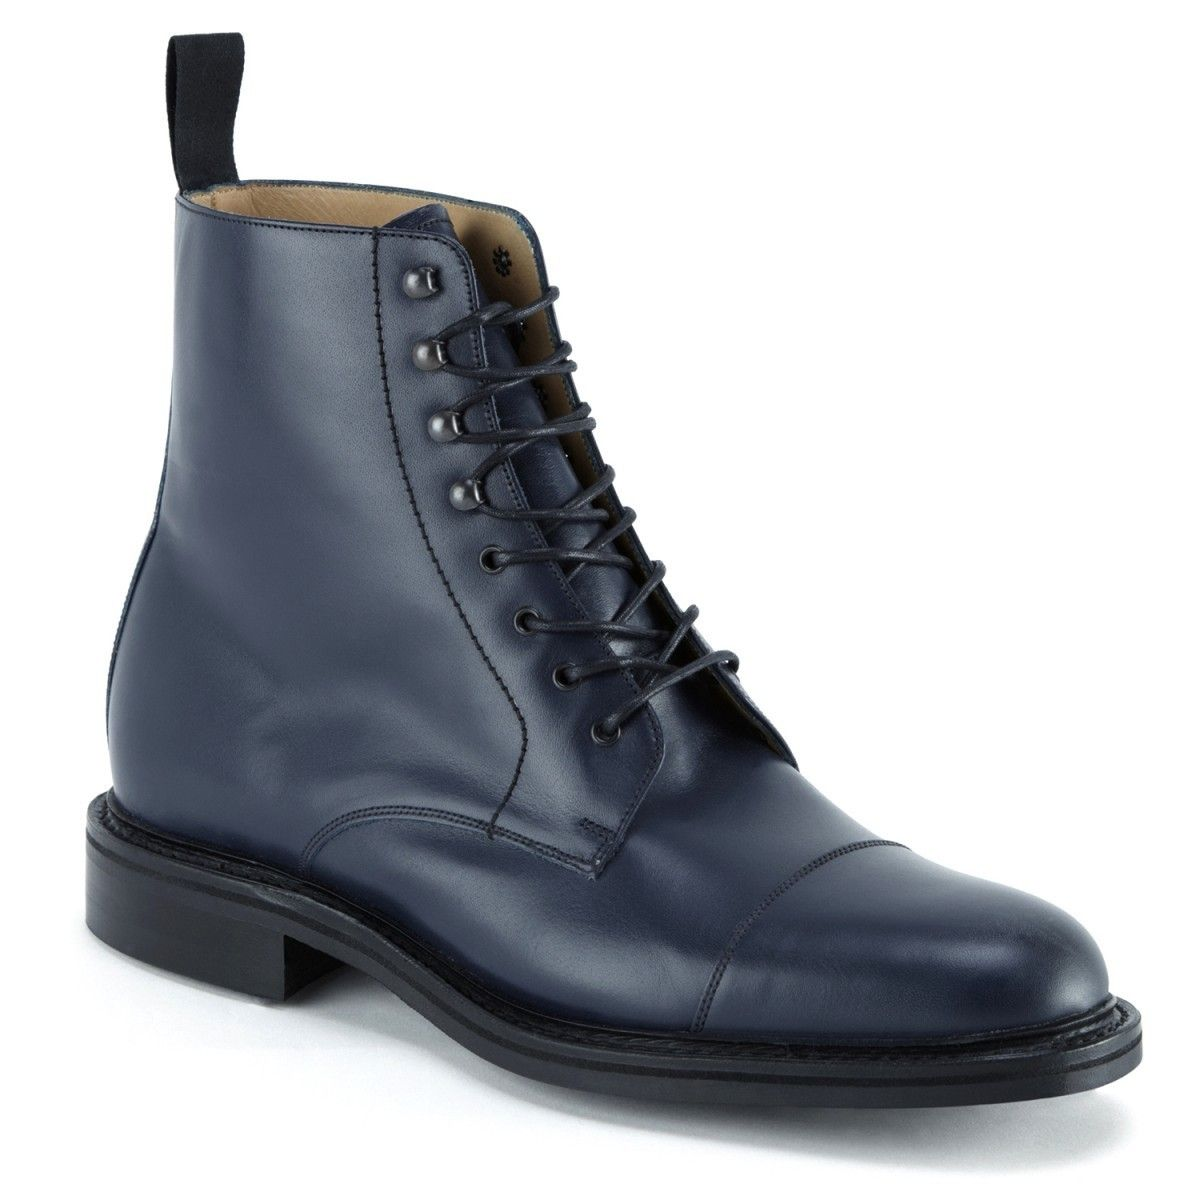 41cf0ac3c75 Handmade Mens ankle leather boots, Men navy blue leather boot, Men ...